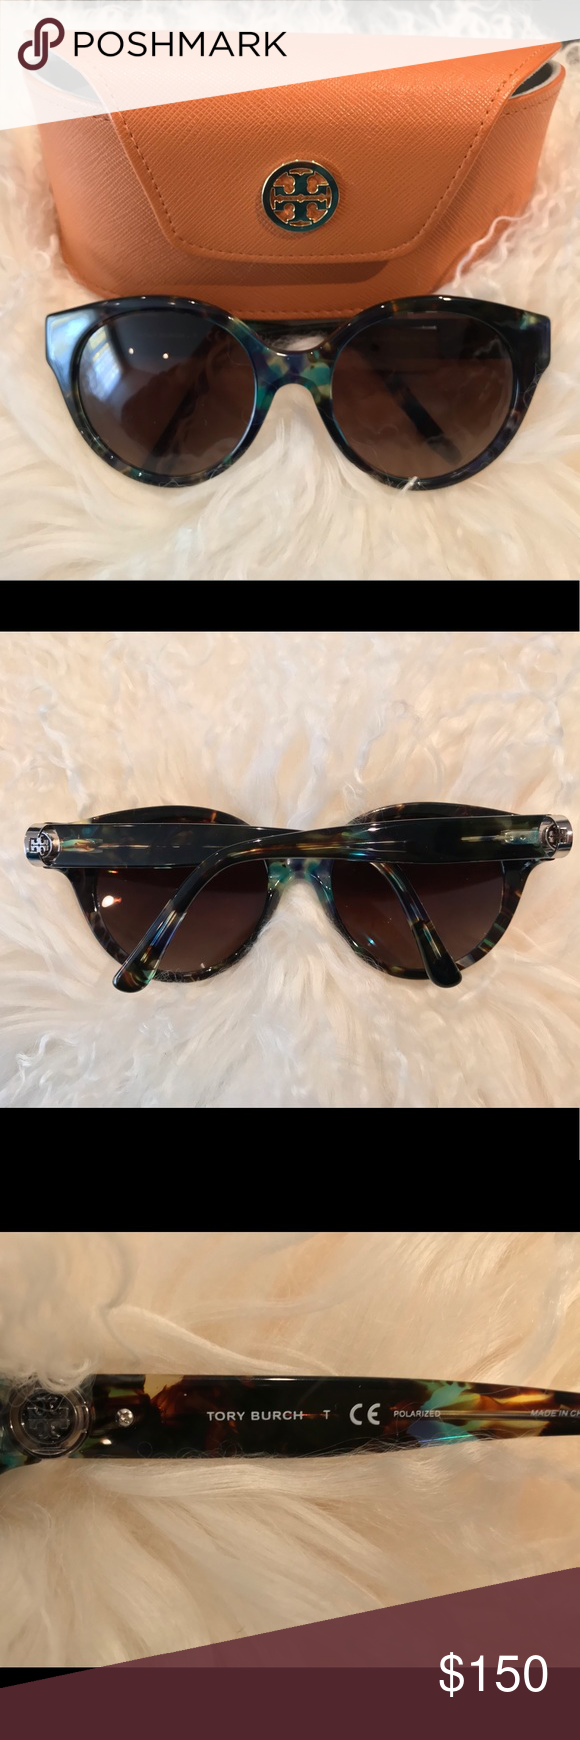 f22af1245848 Tory Burch Blue/Brown/Tort Polarized Sunglasses • Frame Style: ROUND •  Frame Fit: PETITE • Lens Feature: GRADIENT POLARIZED • Eye/Bridge/Temple:  52/19/135 ...